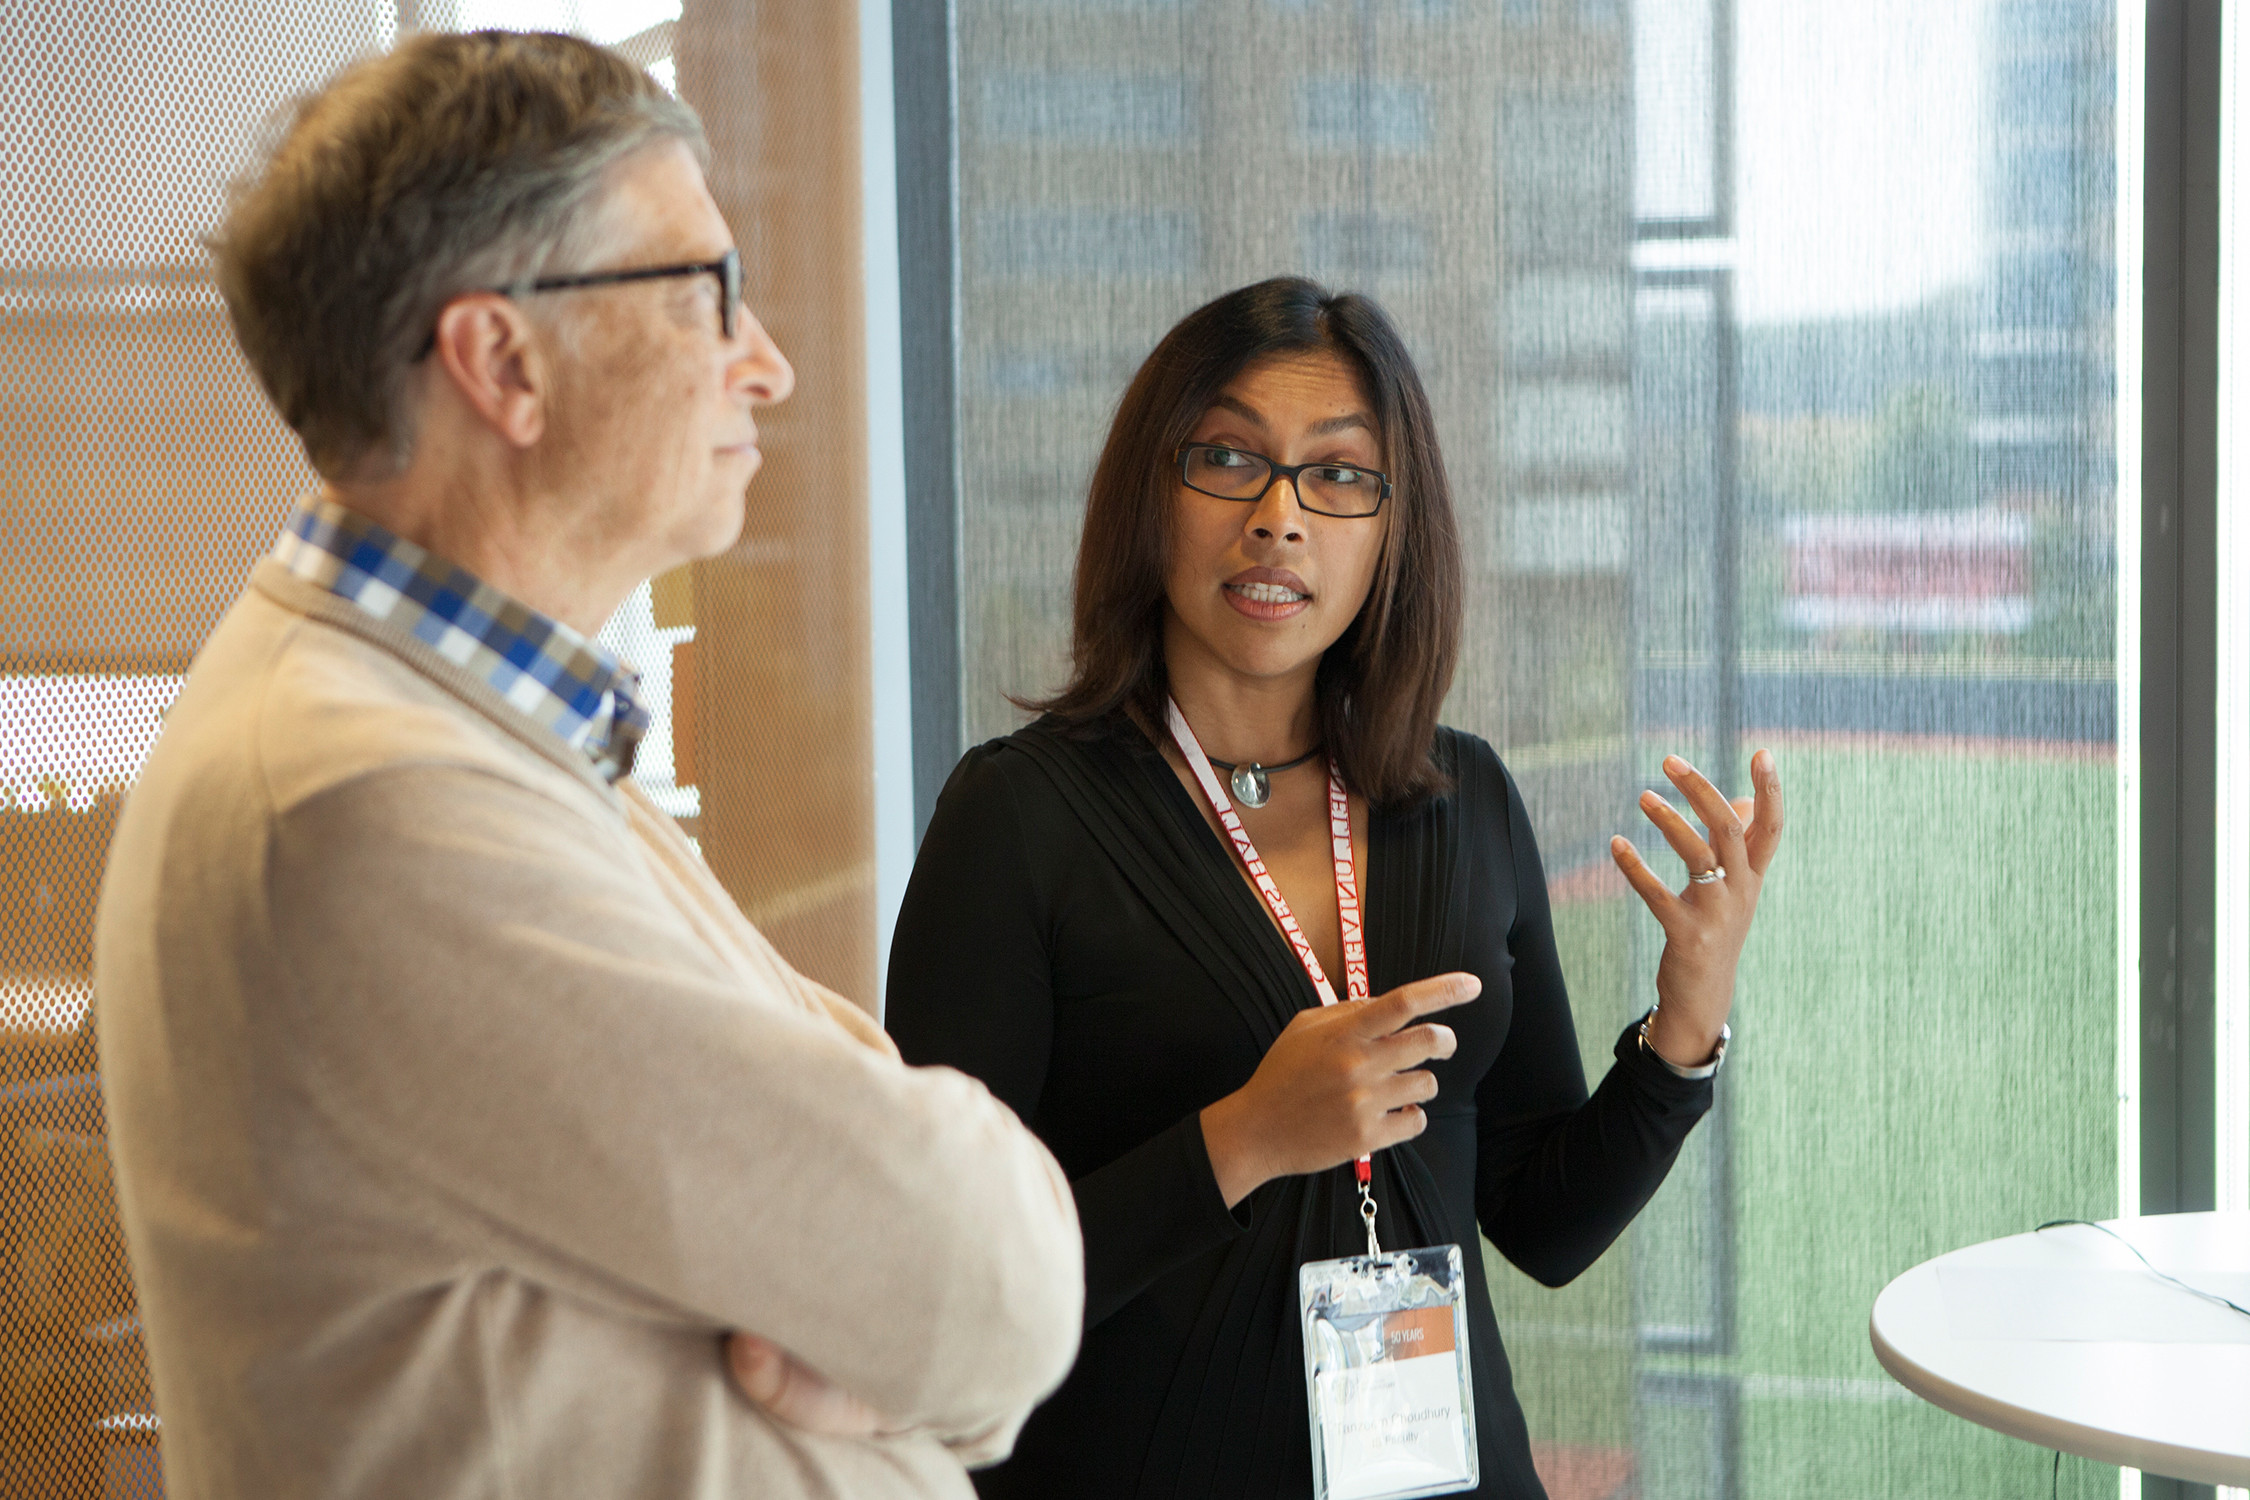 Info Sci Professor Tanzeem Choudhury talks with Bill Gates during his visit to the Cornell campus.